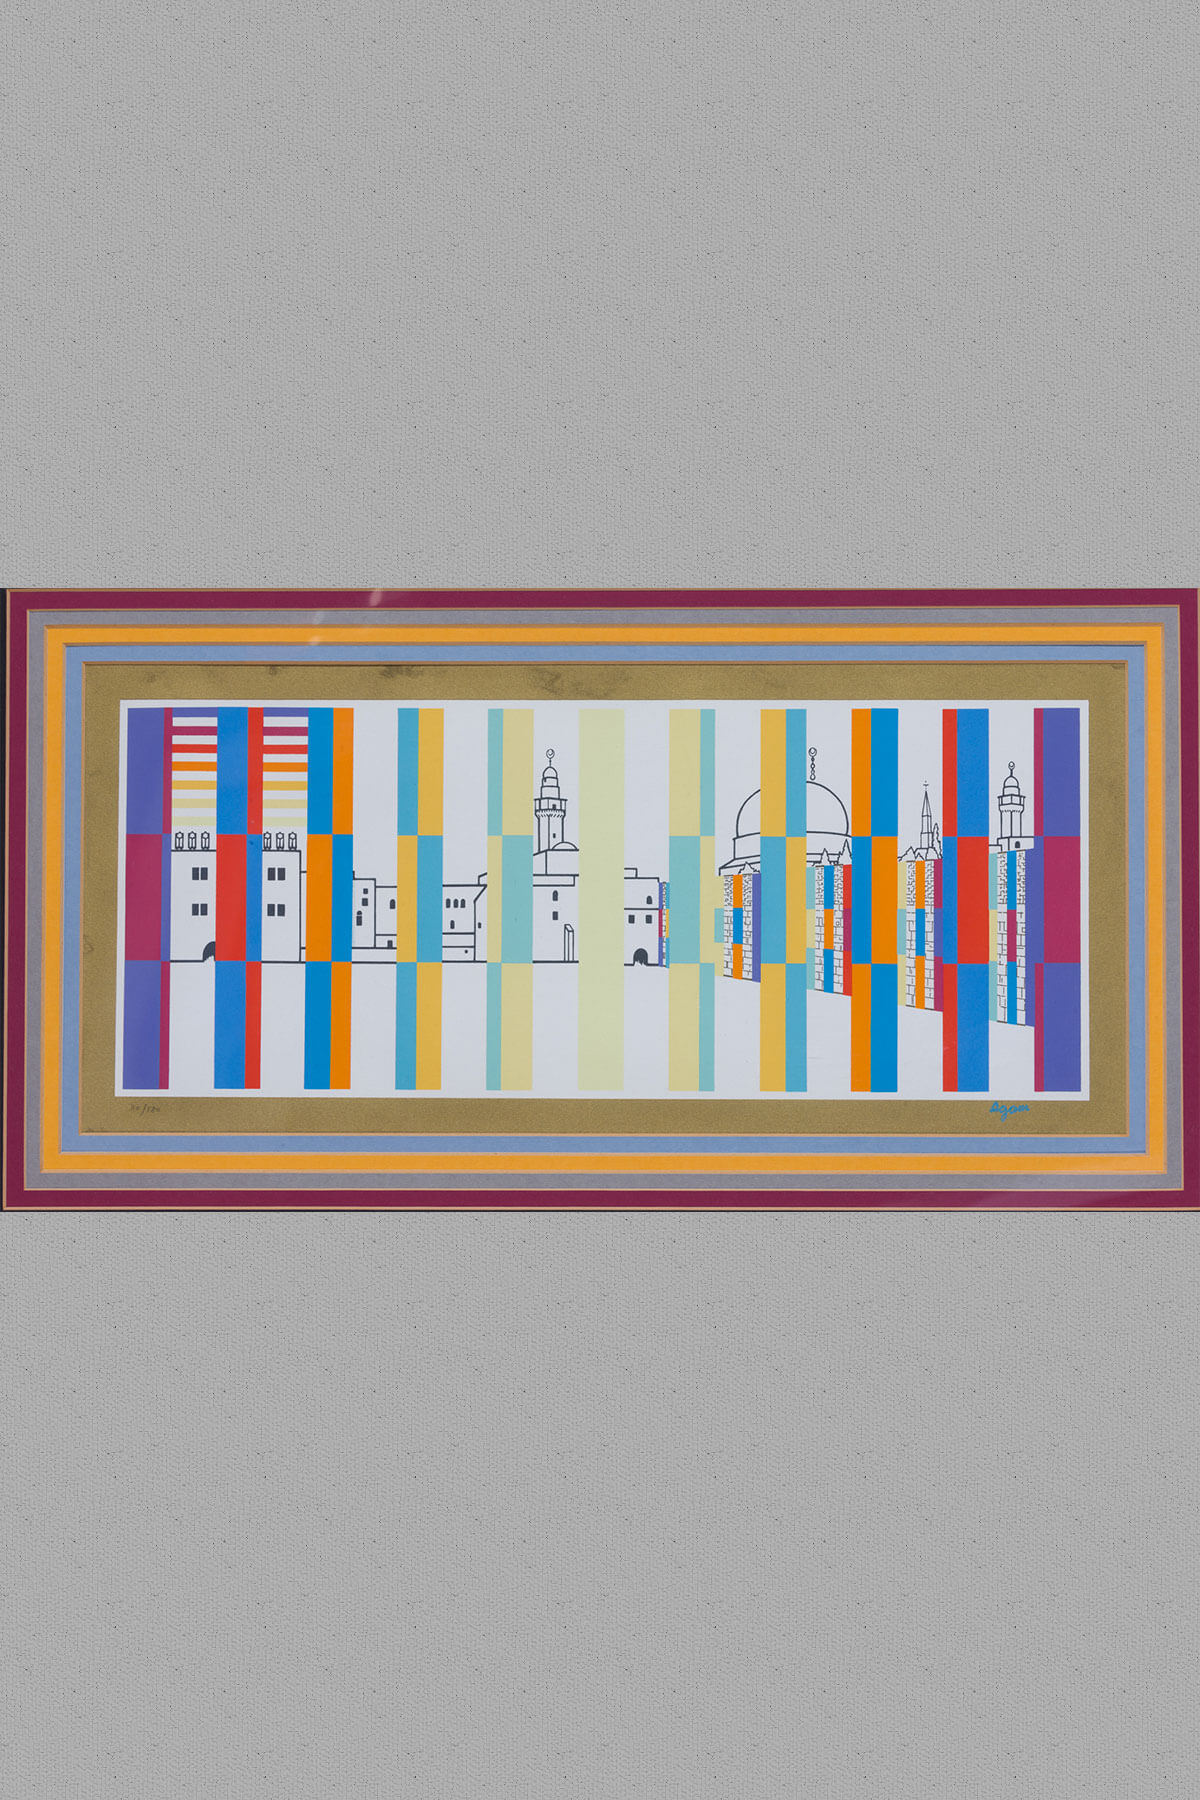 189. A Seriograph by Yaakov Agam